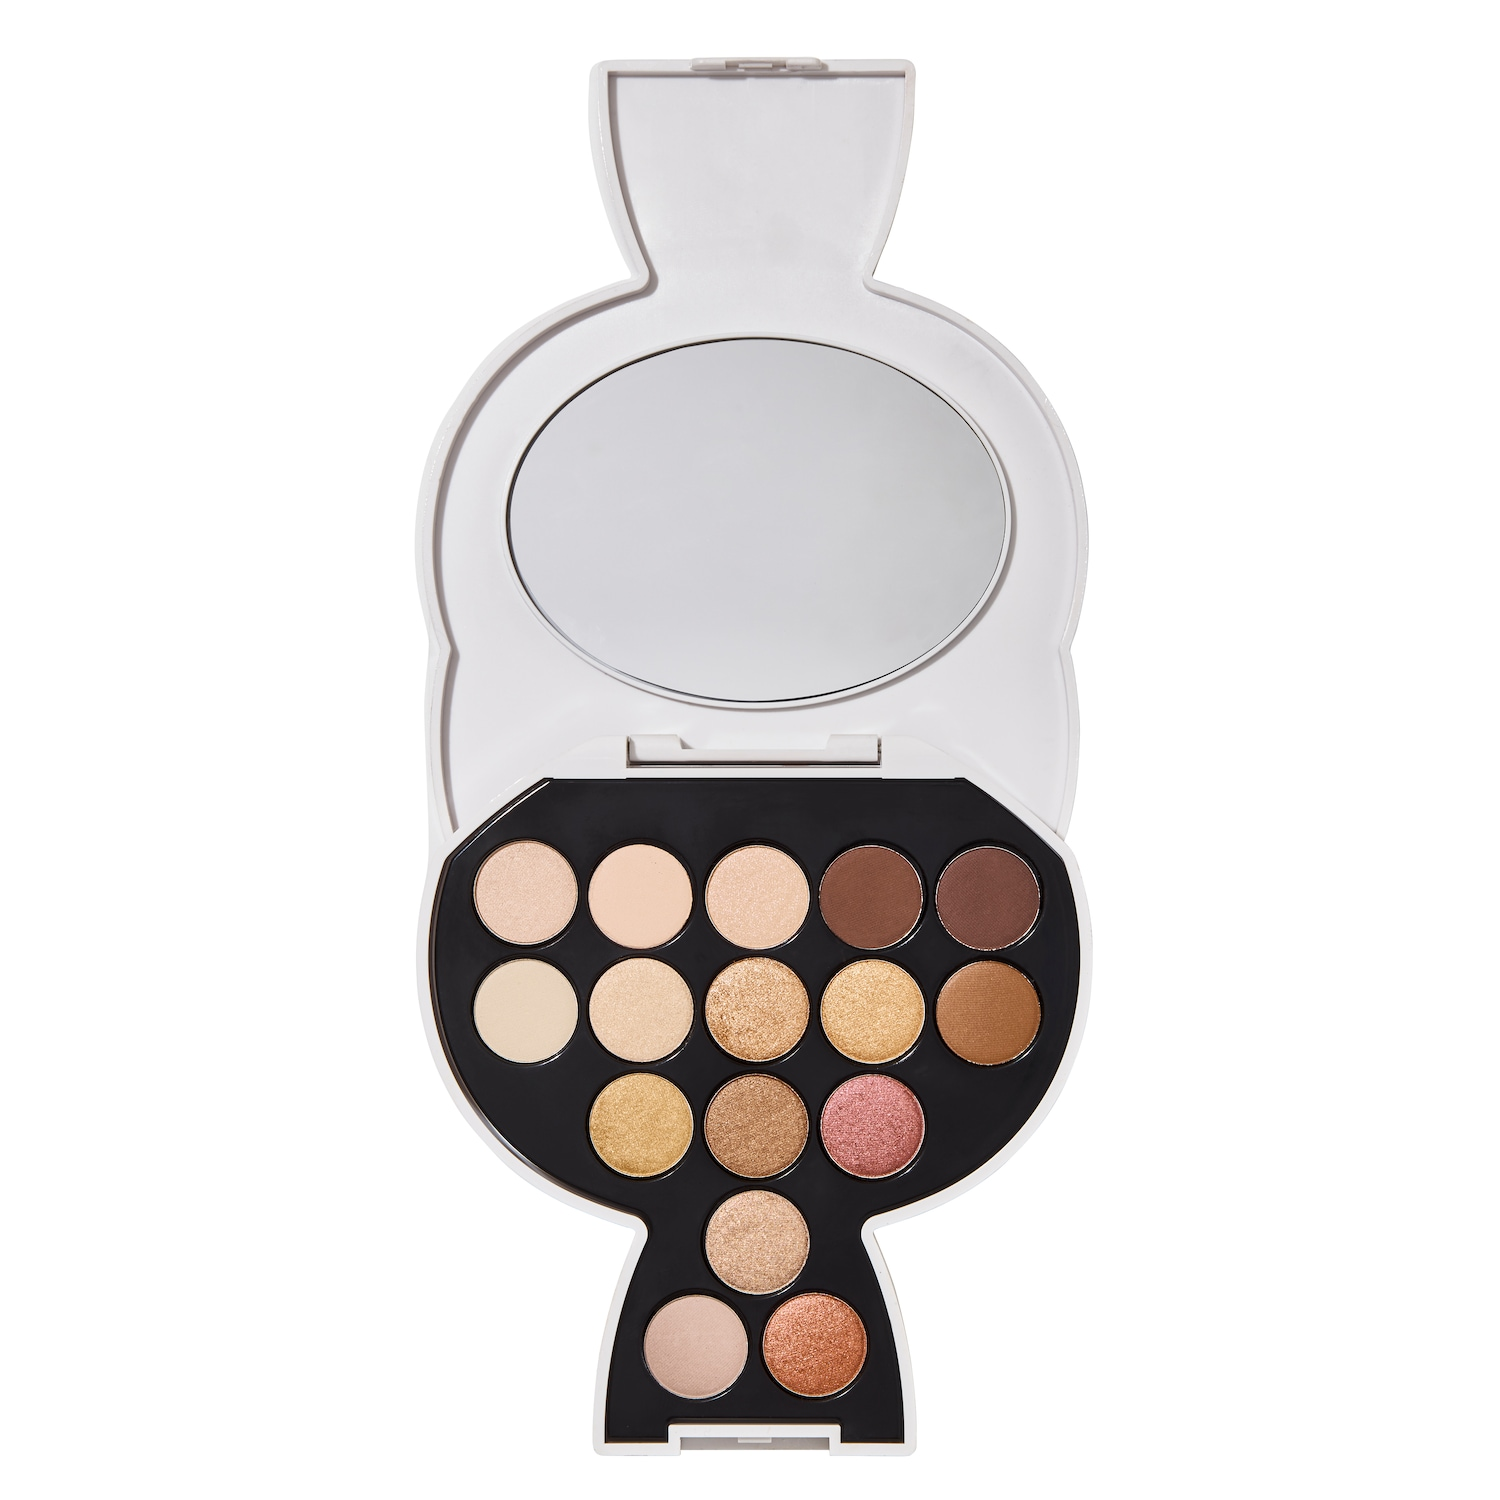 Choupette Collectable Eyeshadow Palette Day to Night Lidschattenpalette